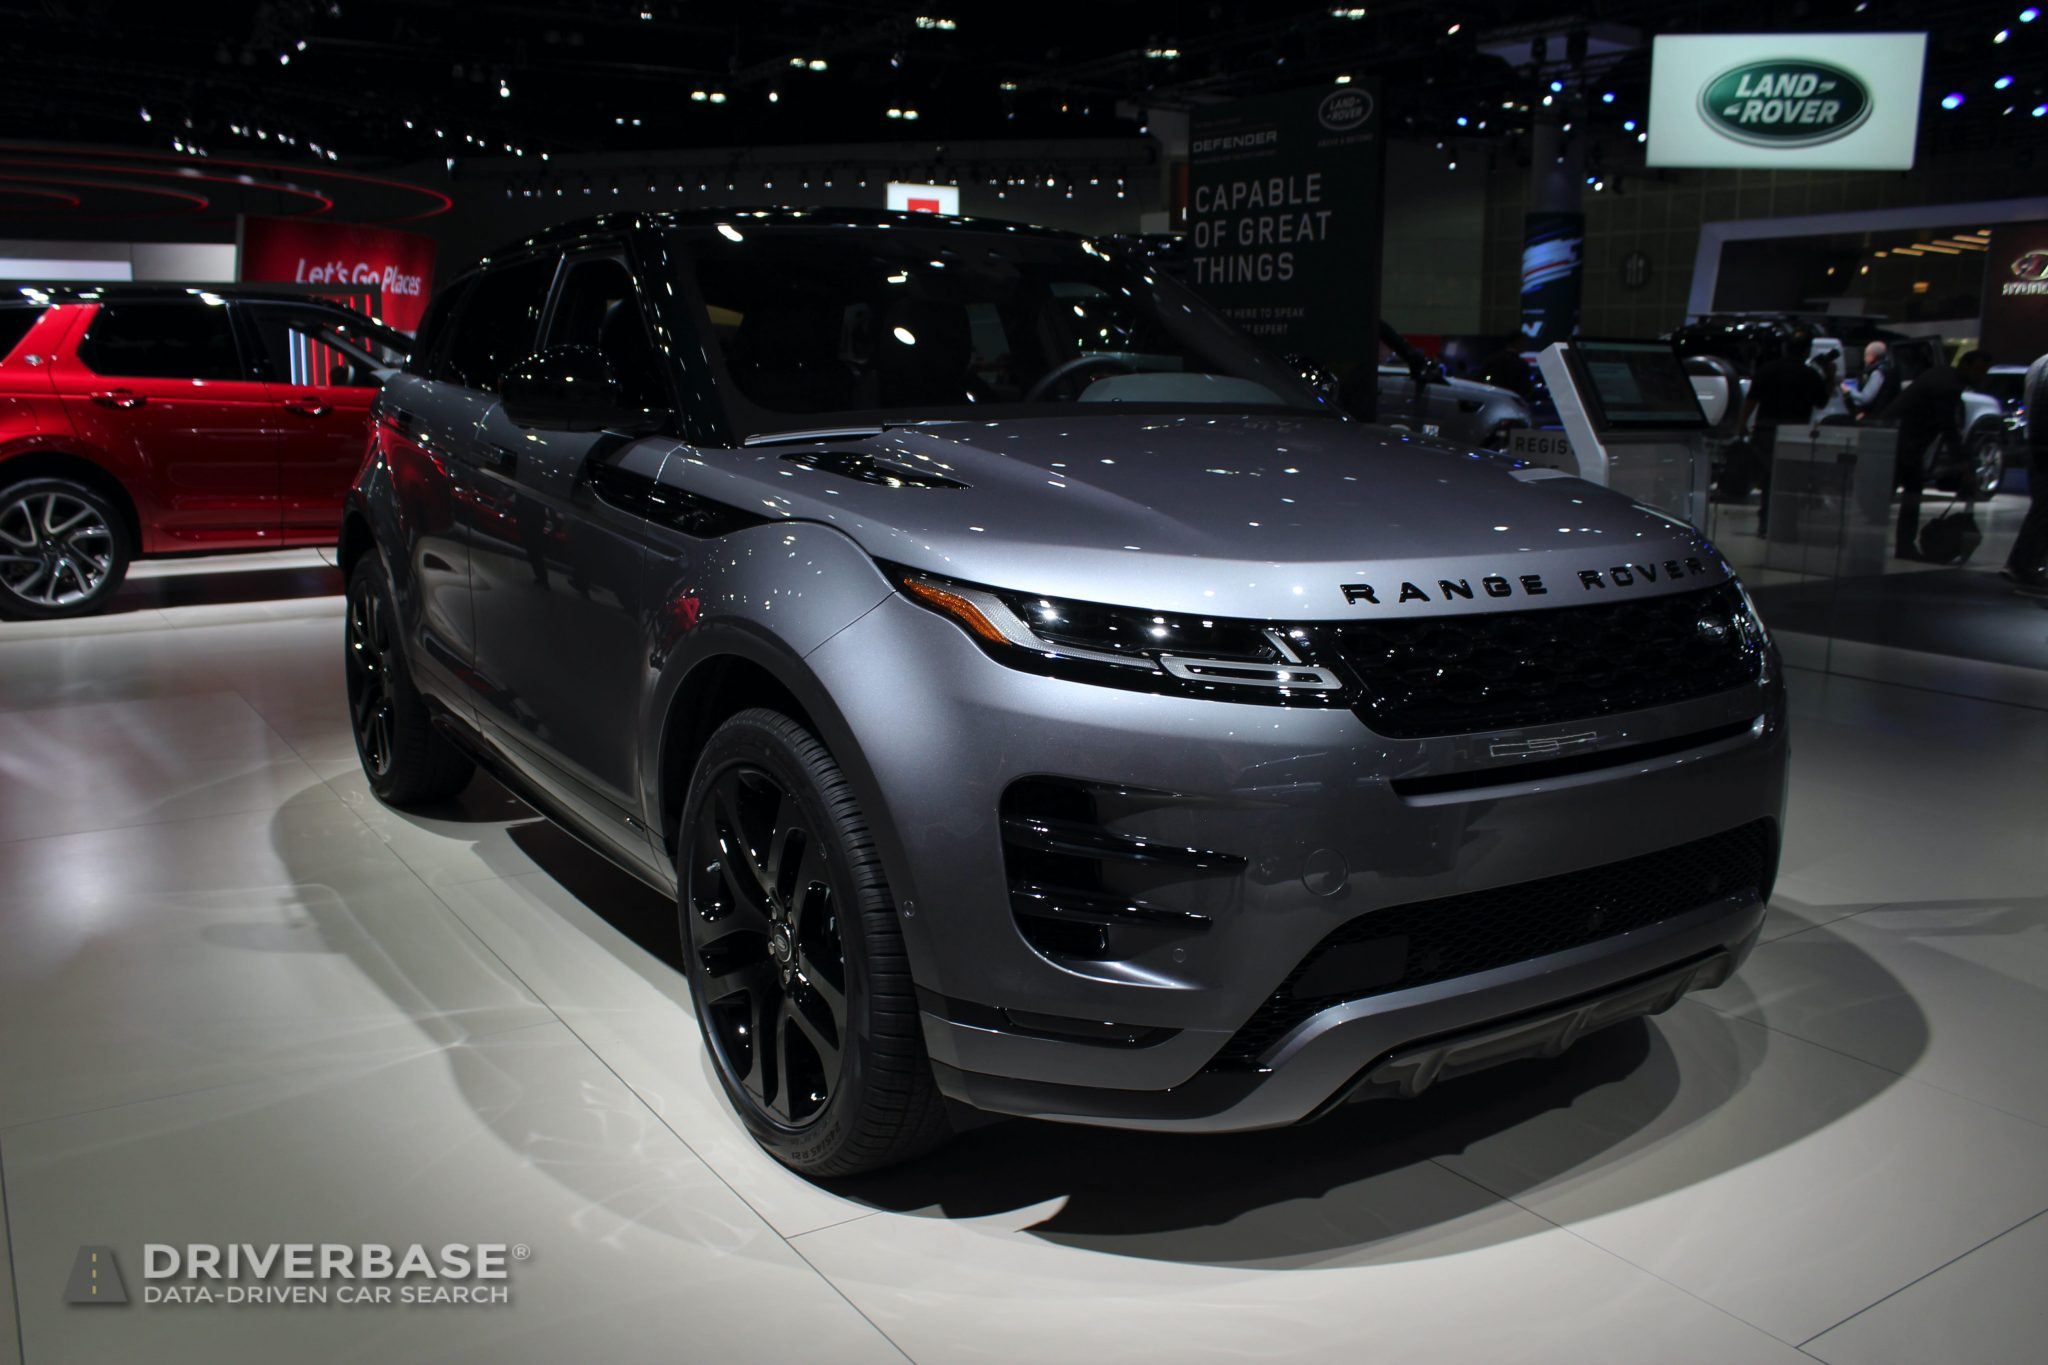 2020 Land Rover Range Rover Evoque at the 2019 Los Angeles Auto Show